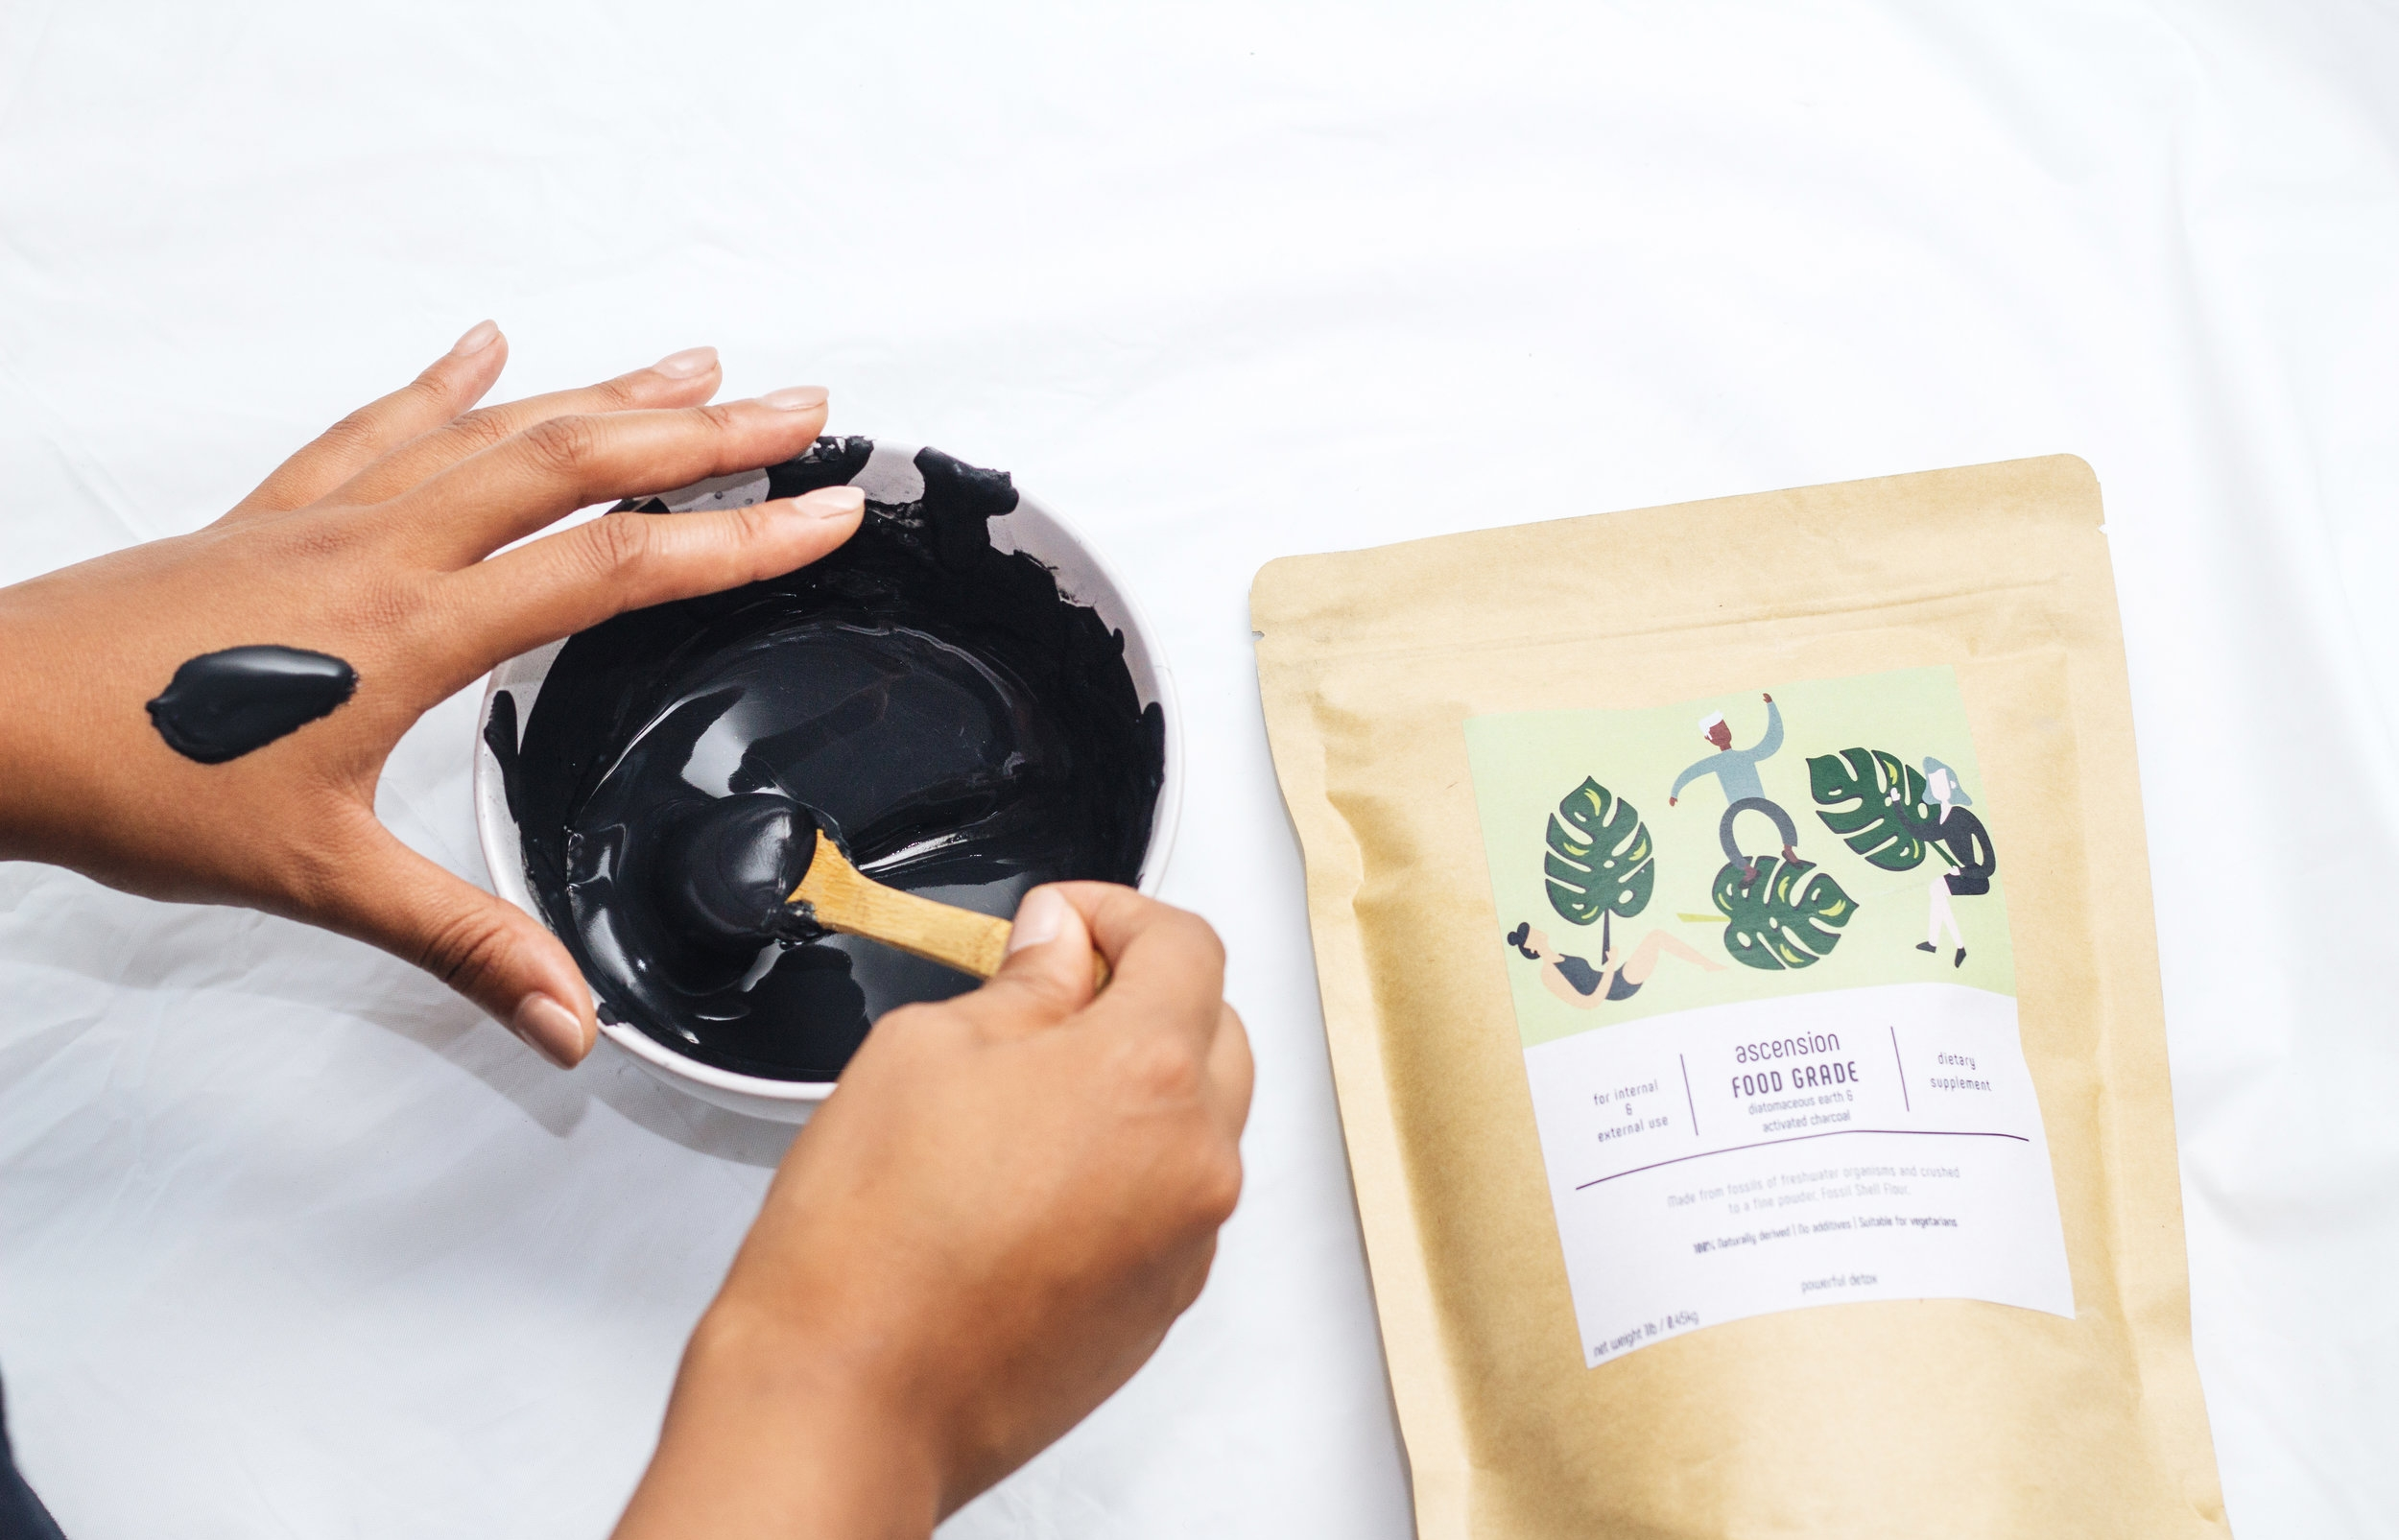 Diatomaceous Earth & Activated Charcoal - Try our new multi-use powder blend. This mix acts as a natural magnet to draw out toxins, heavy metals, chemicals, dirt and other micro-particles to the surface of the skin and inside the body. Helping you to achieve a flawless complexion, fight acne and have great health all in ONE.